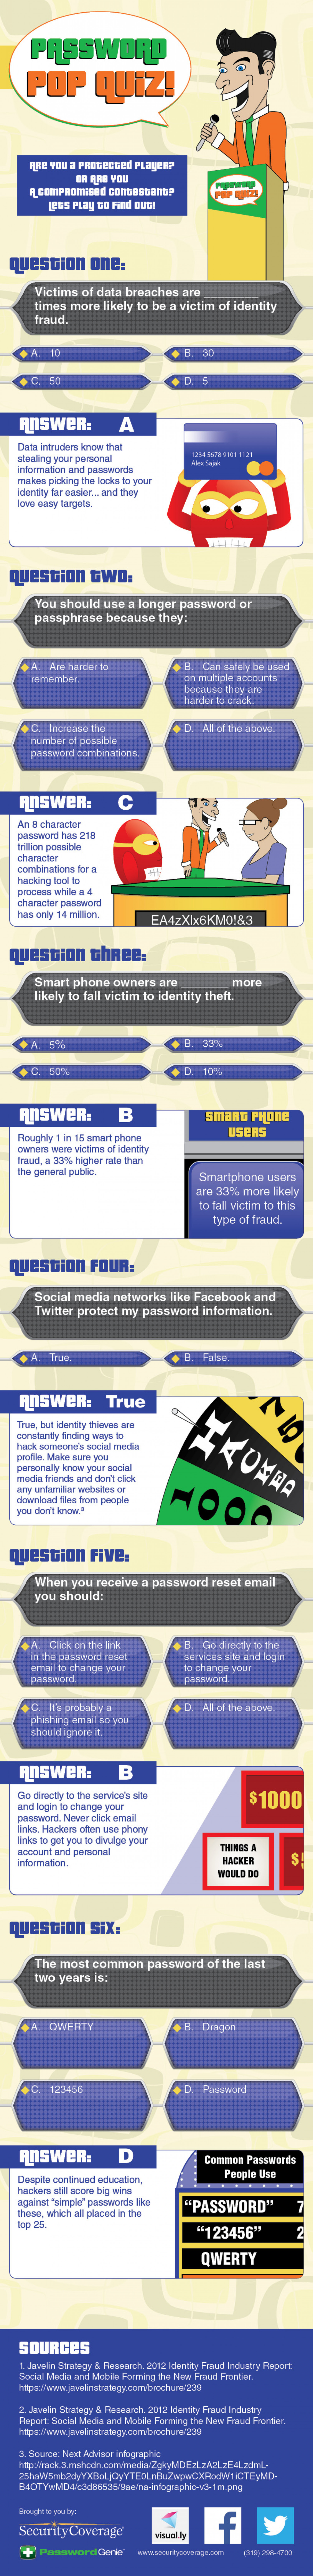 Password Pop Quiz Infographic